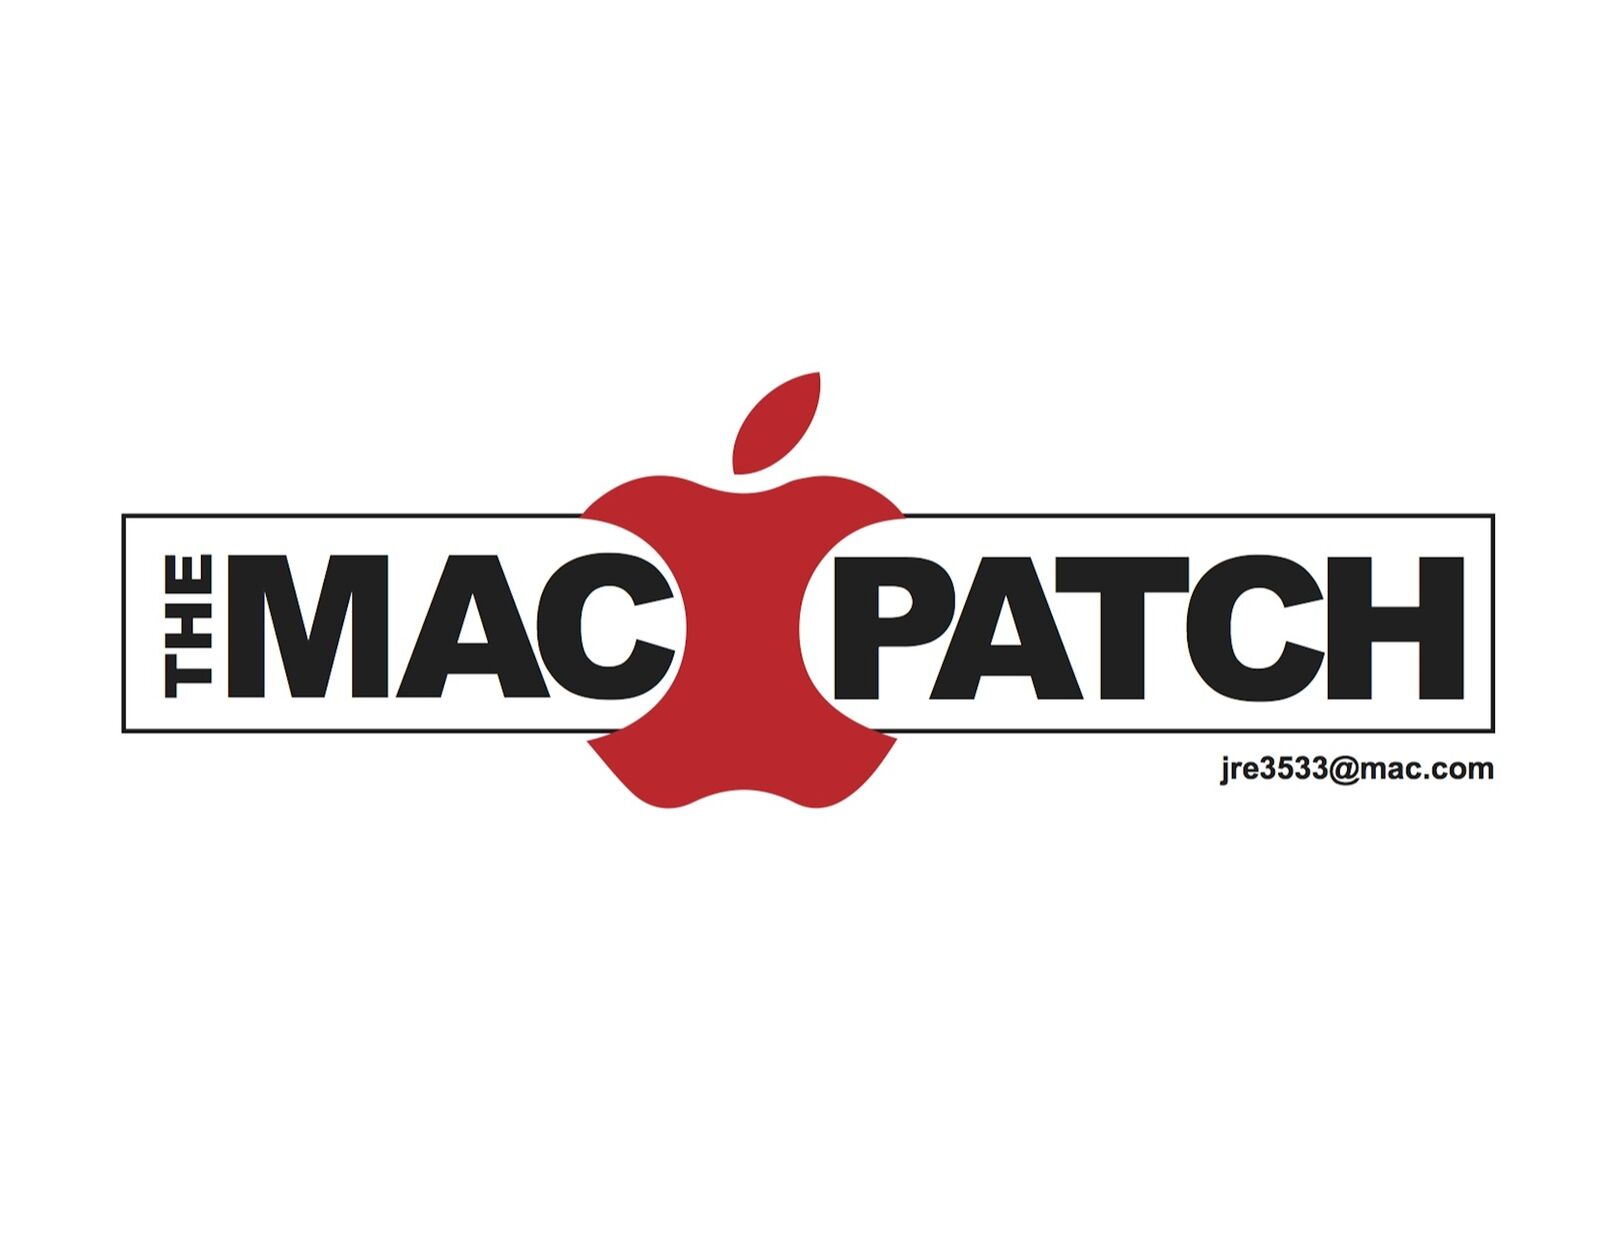 The Mac Patch